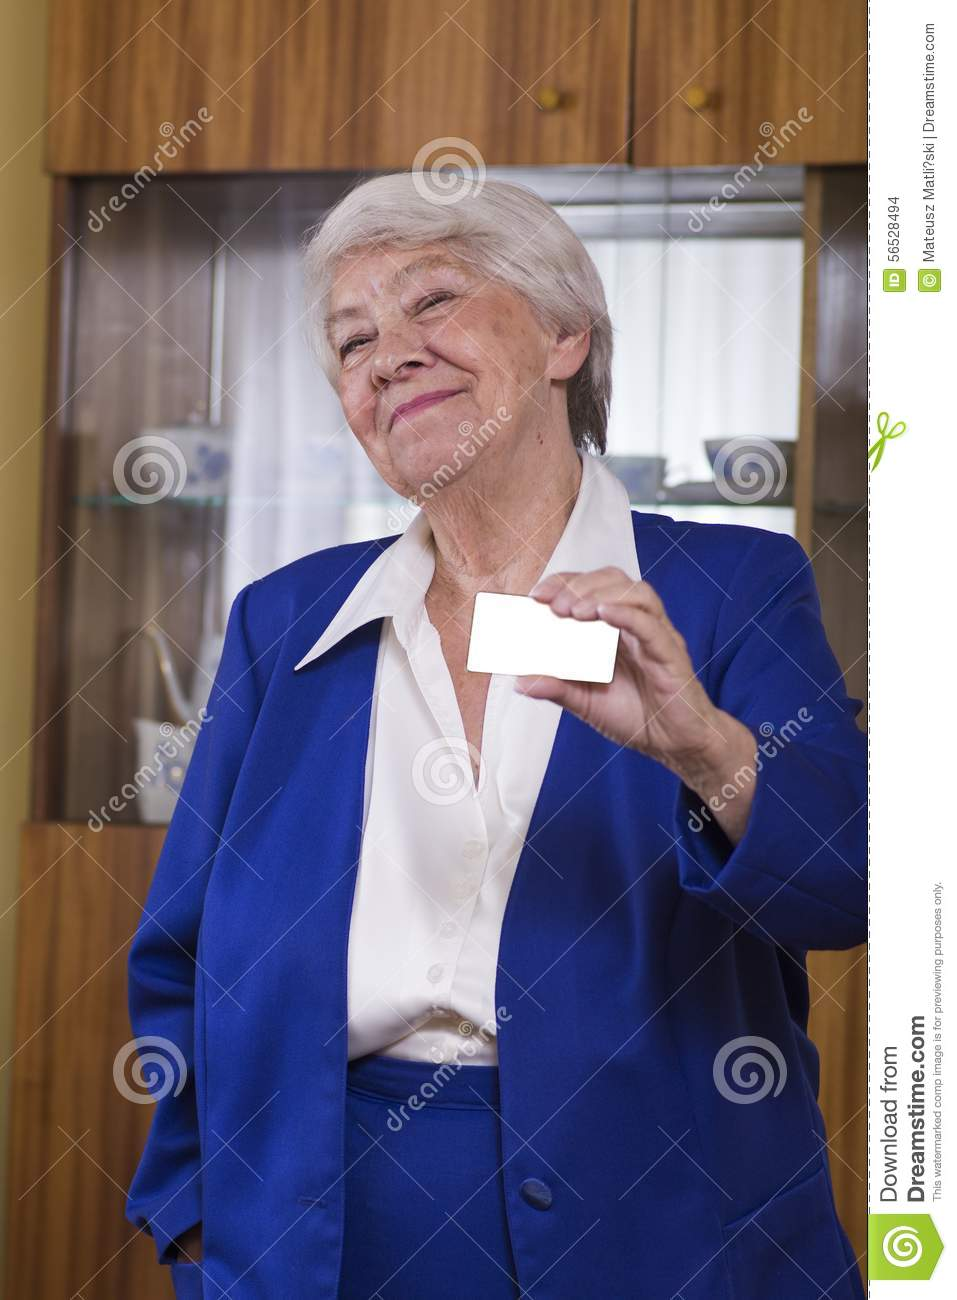 Smiling senior businesswoman holding blank empty business card o download smiling senior businesswoman holding blank empty business card o stock photo image of hand reheart Image collections